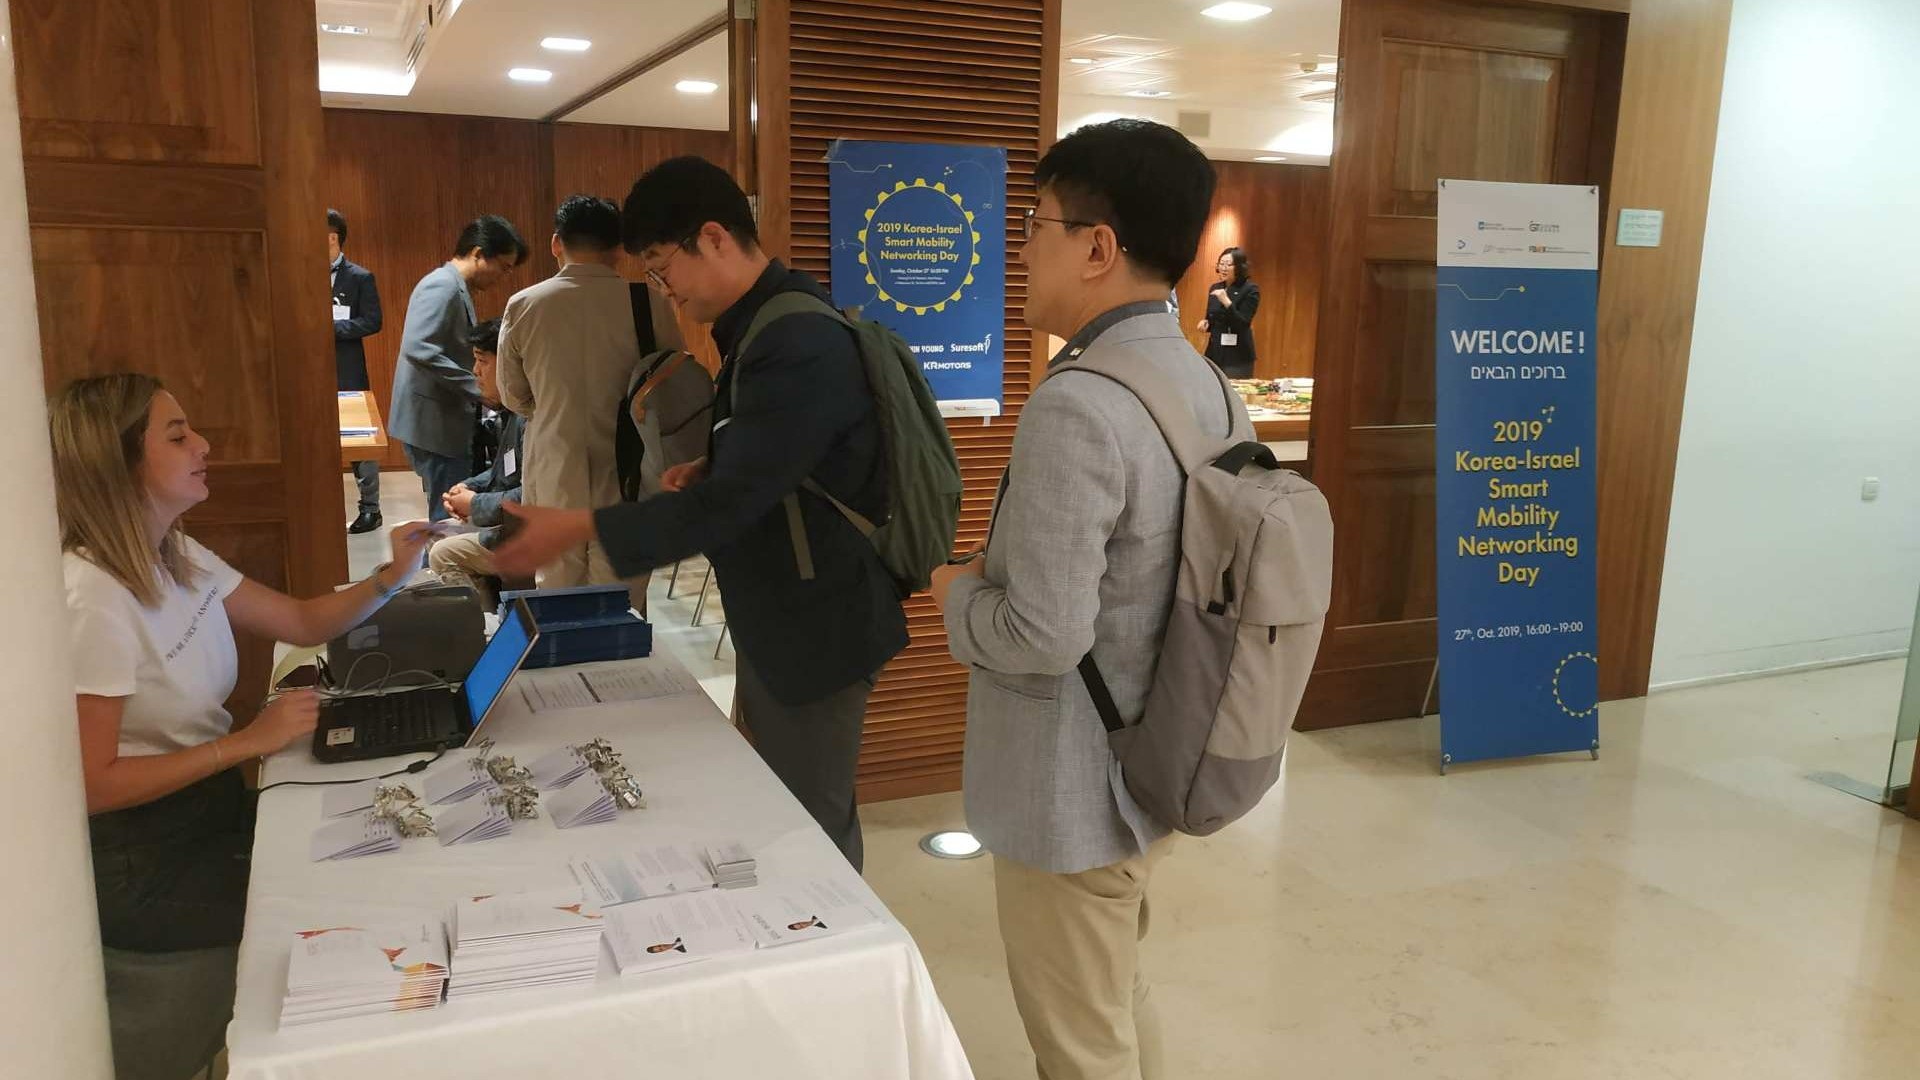 Smart-Mobility-Networking-Day--2019-KOISRA